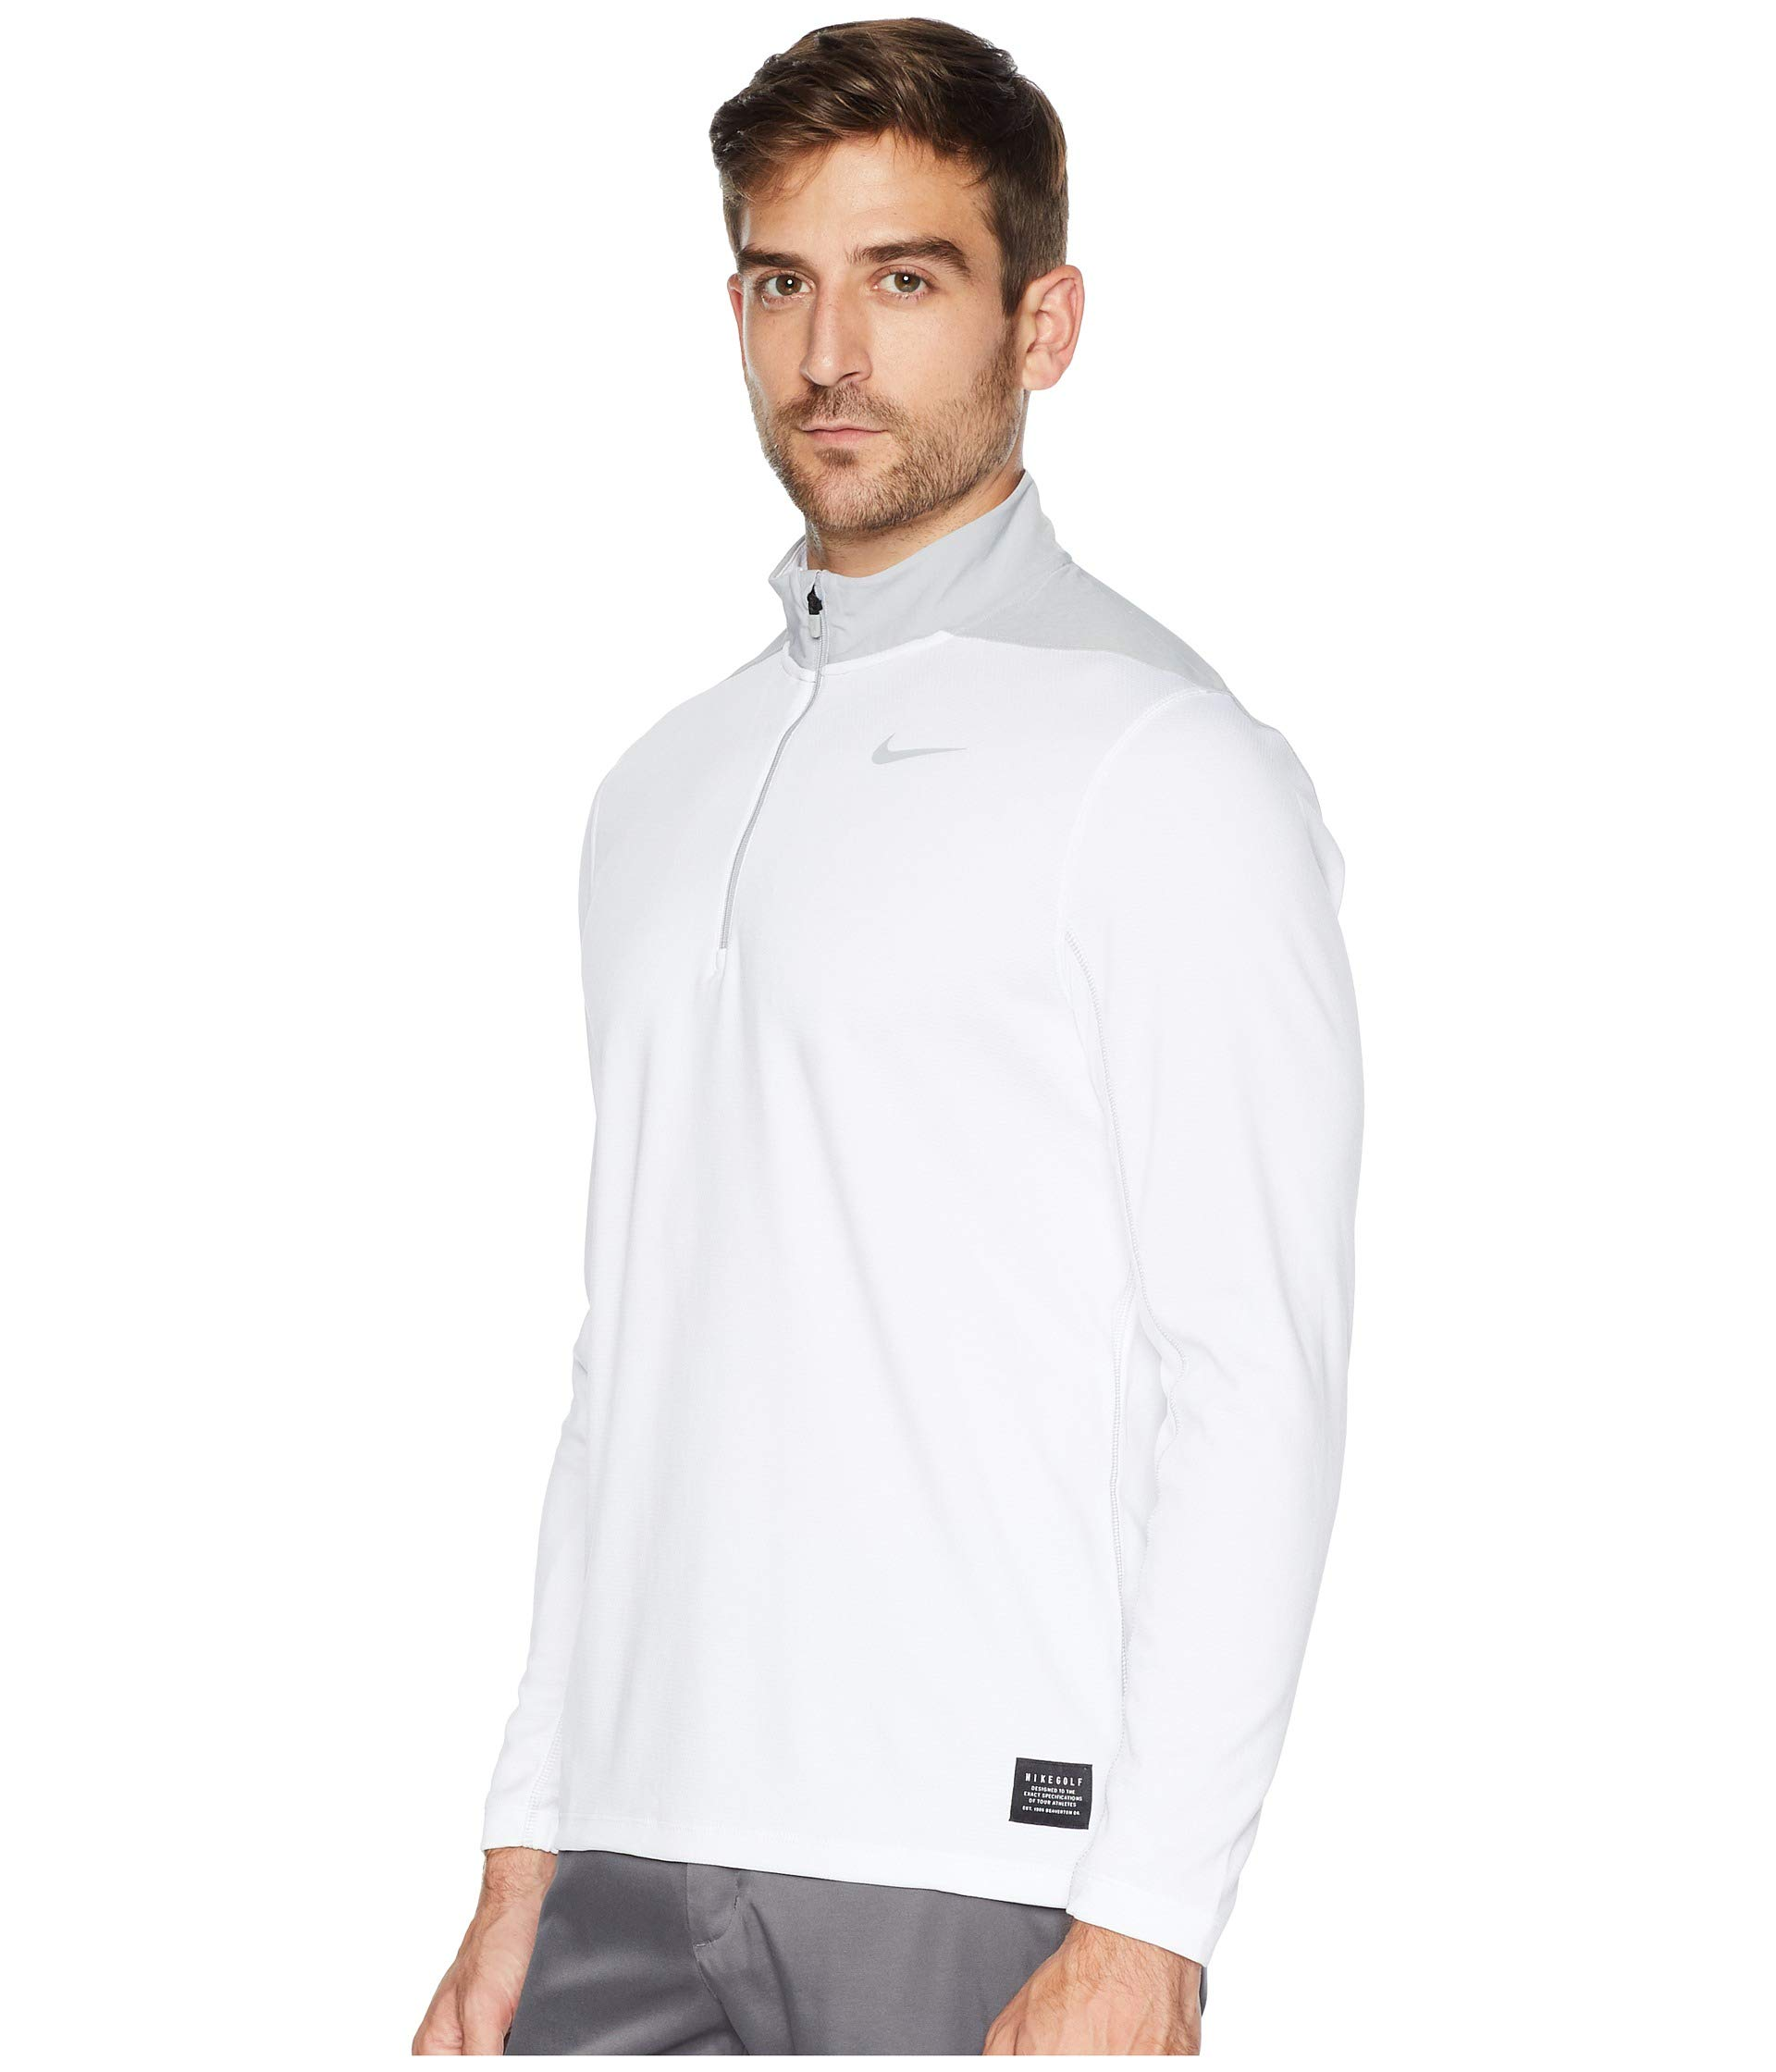 NIKE Men's Dry Top Half Zip core Golf Top (White/Wolf Grey, XXX-Large) by NIKE (Image #2)